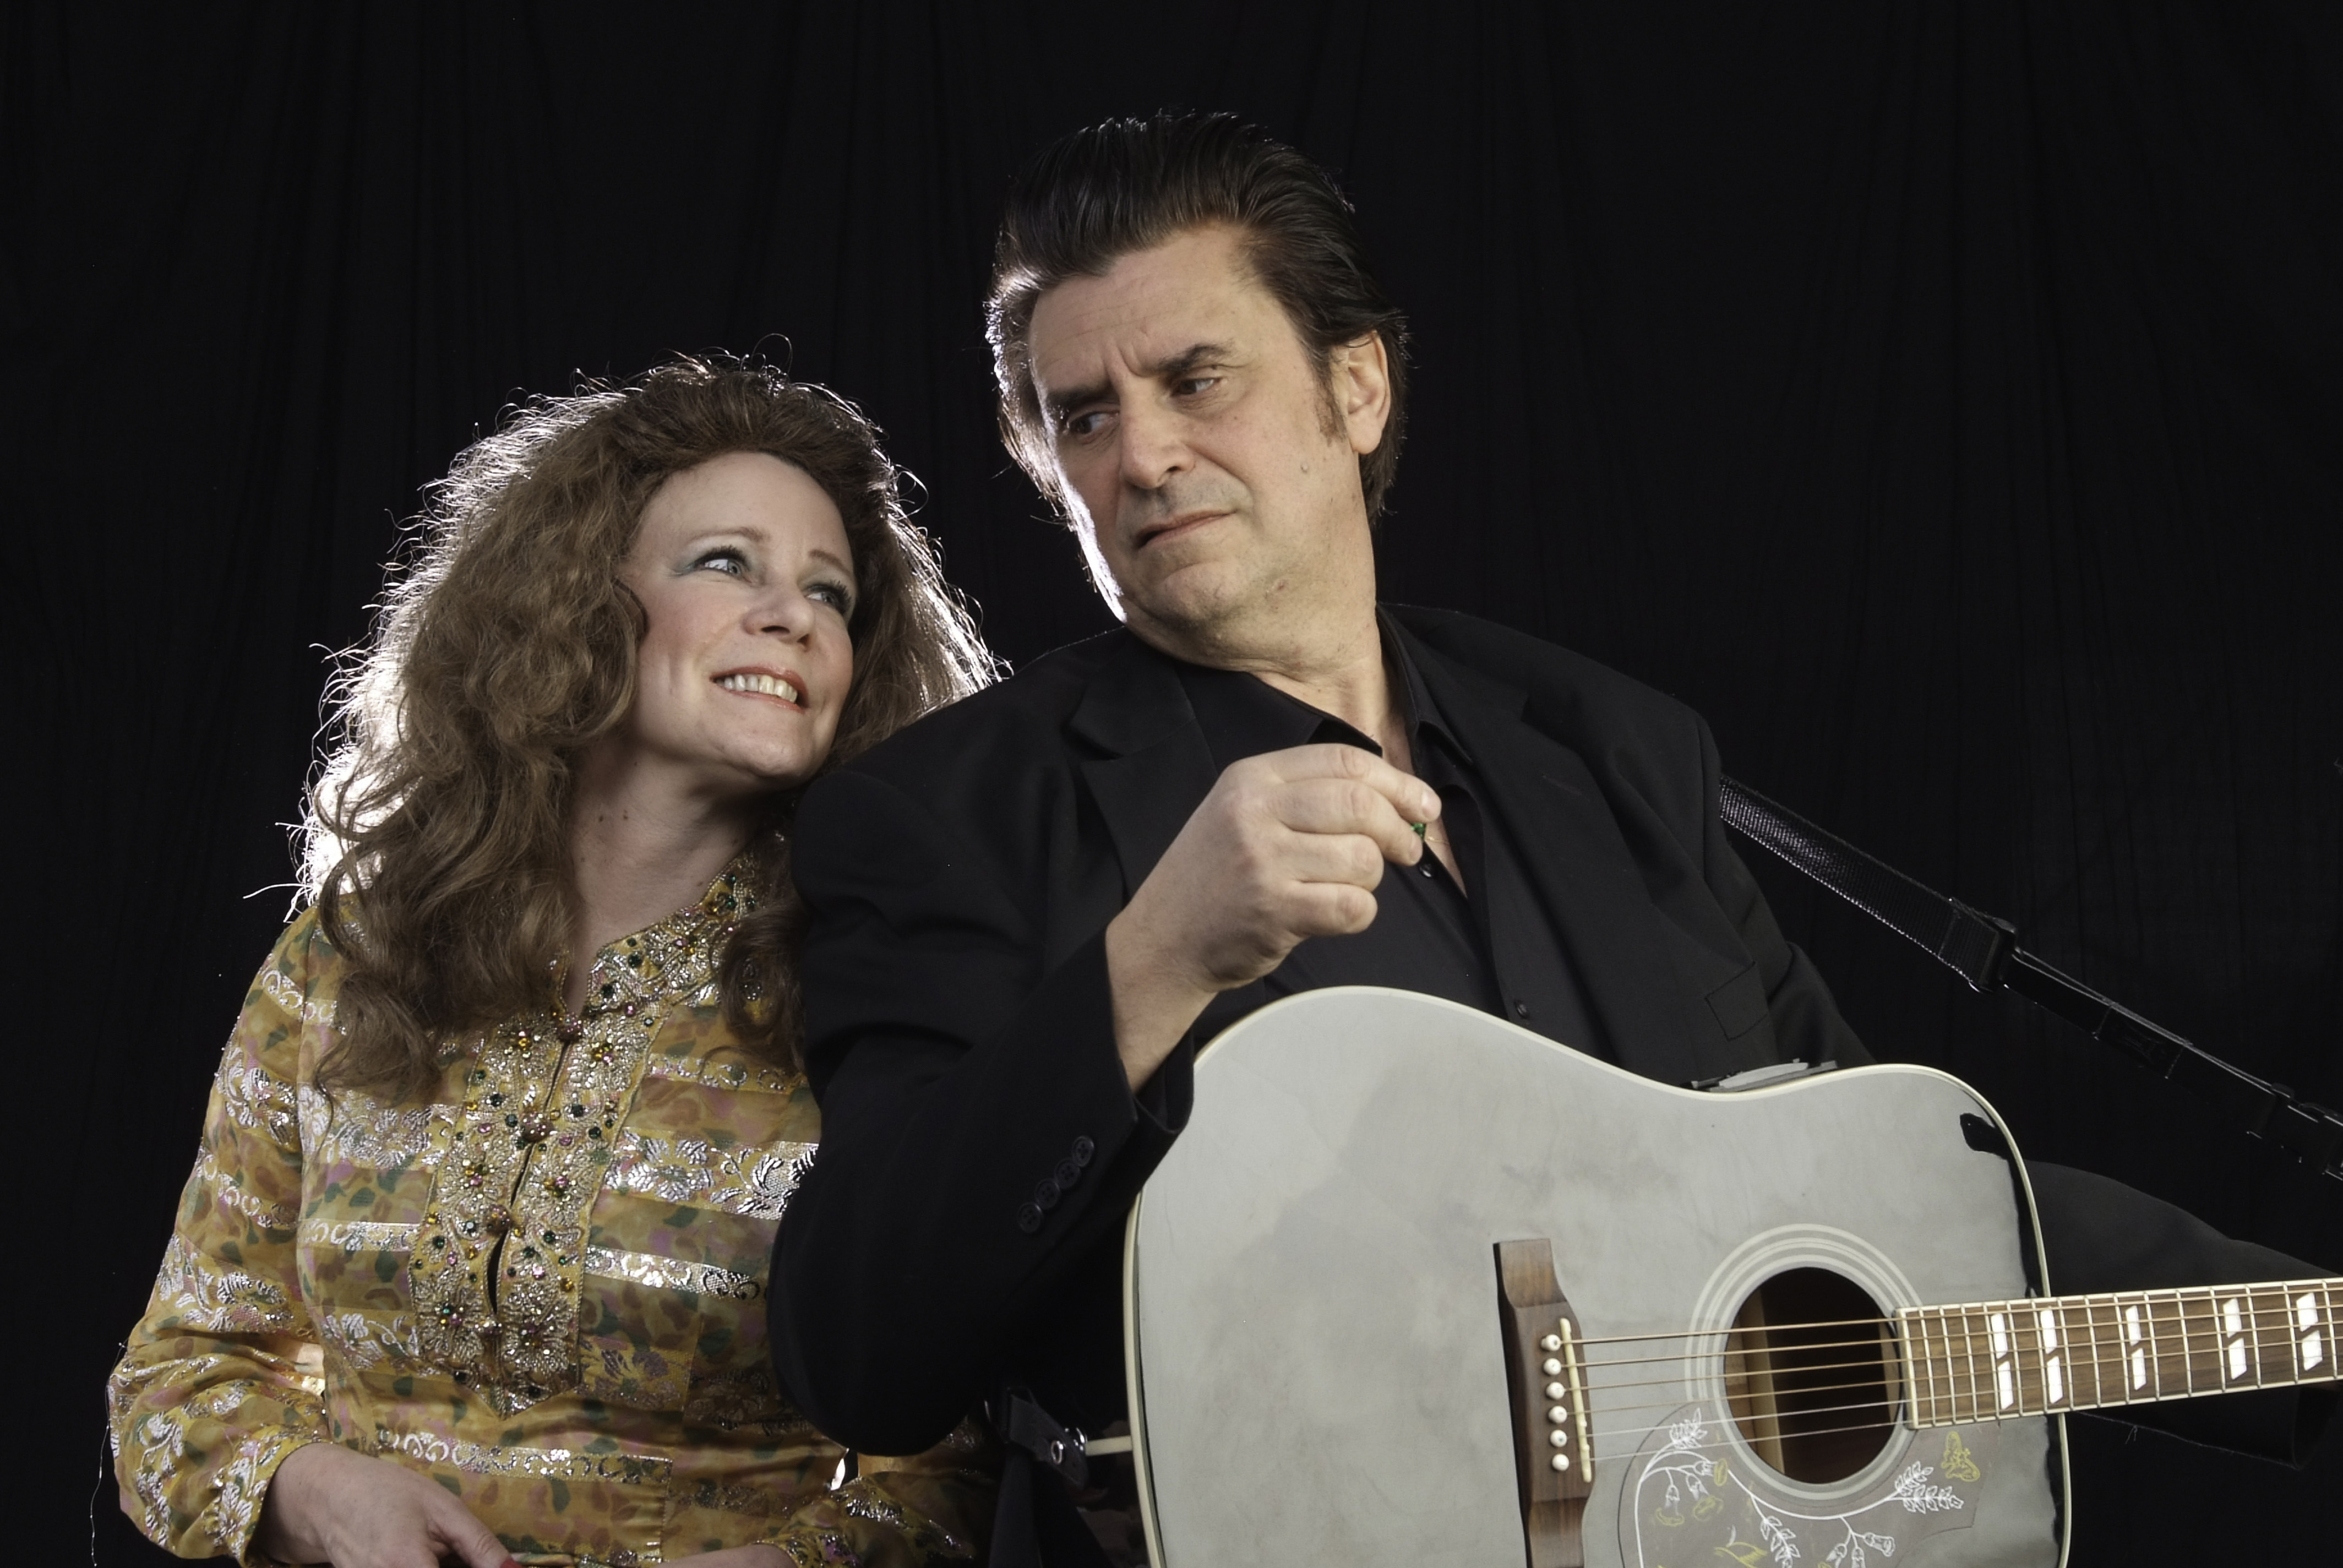 Promotional image for the upcoming Johnny Cash Tribute at Music on the Barge on July 28